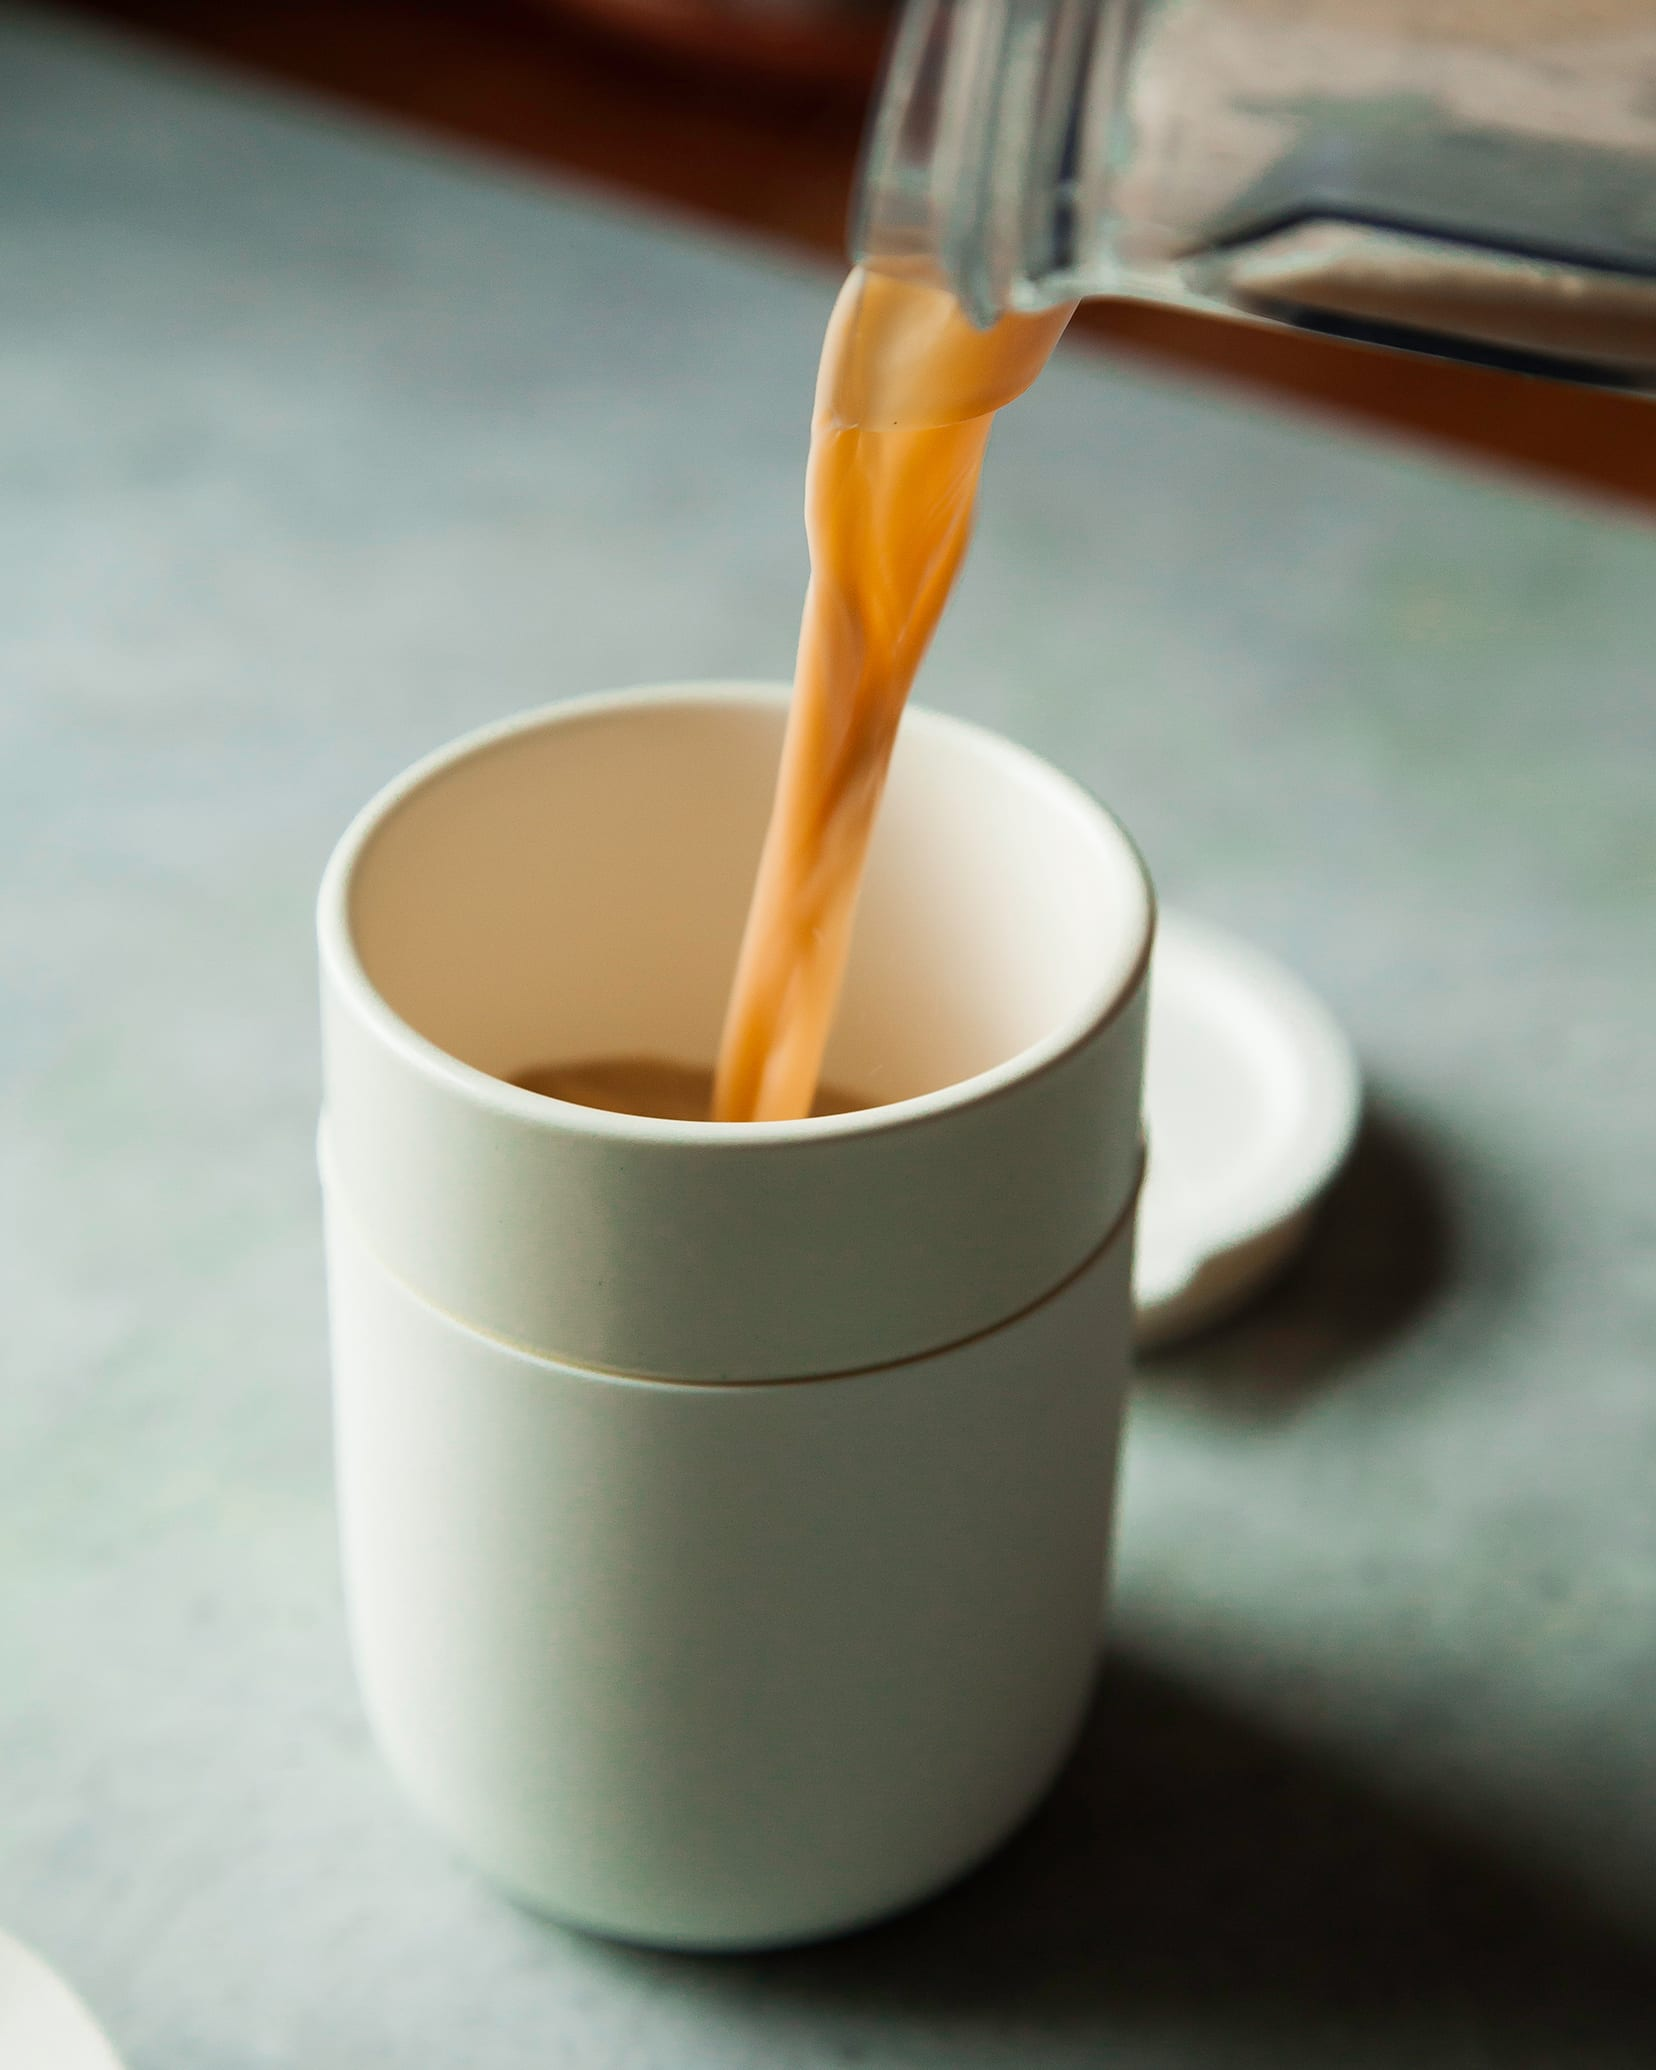 A tea latte is being poured into a white to-go mug.